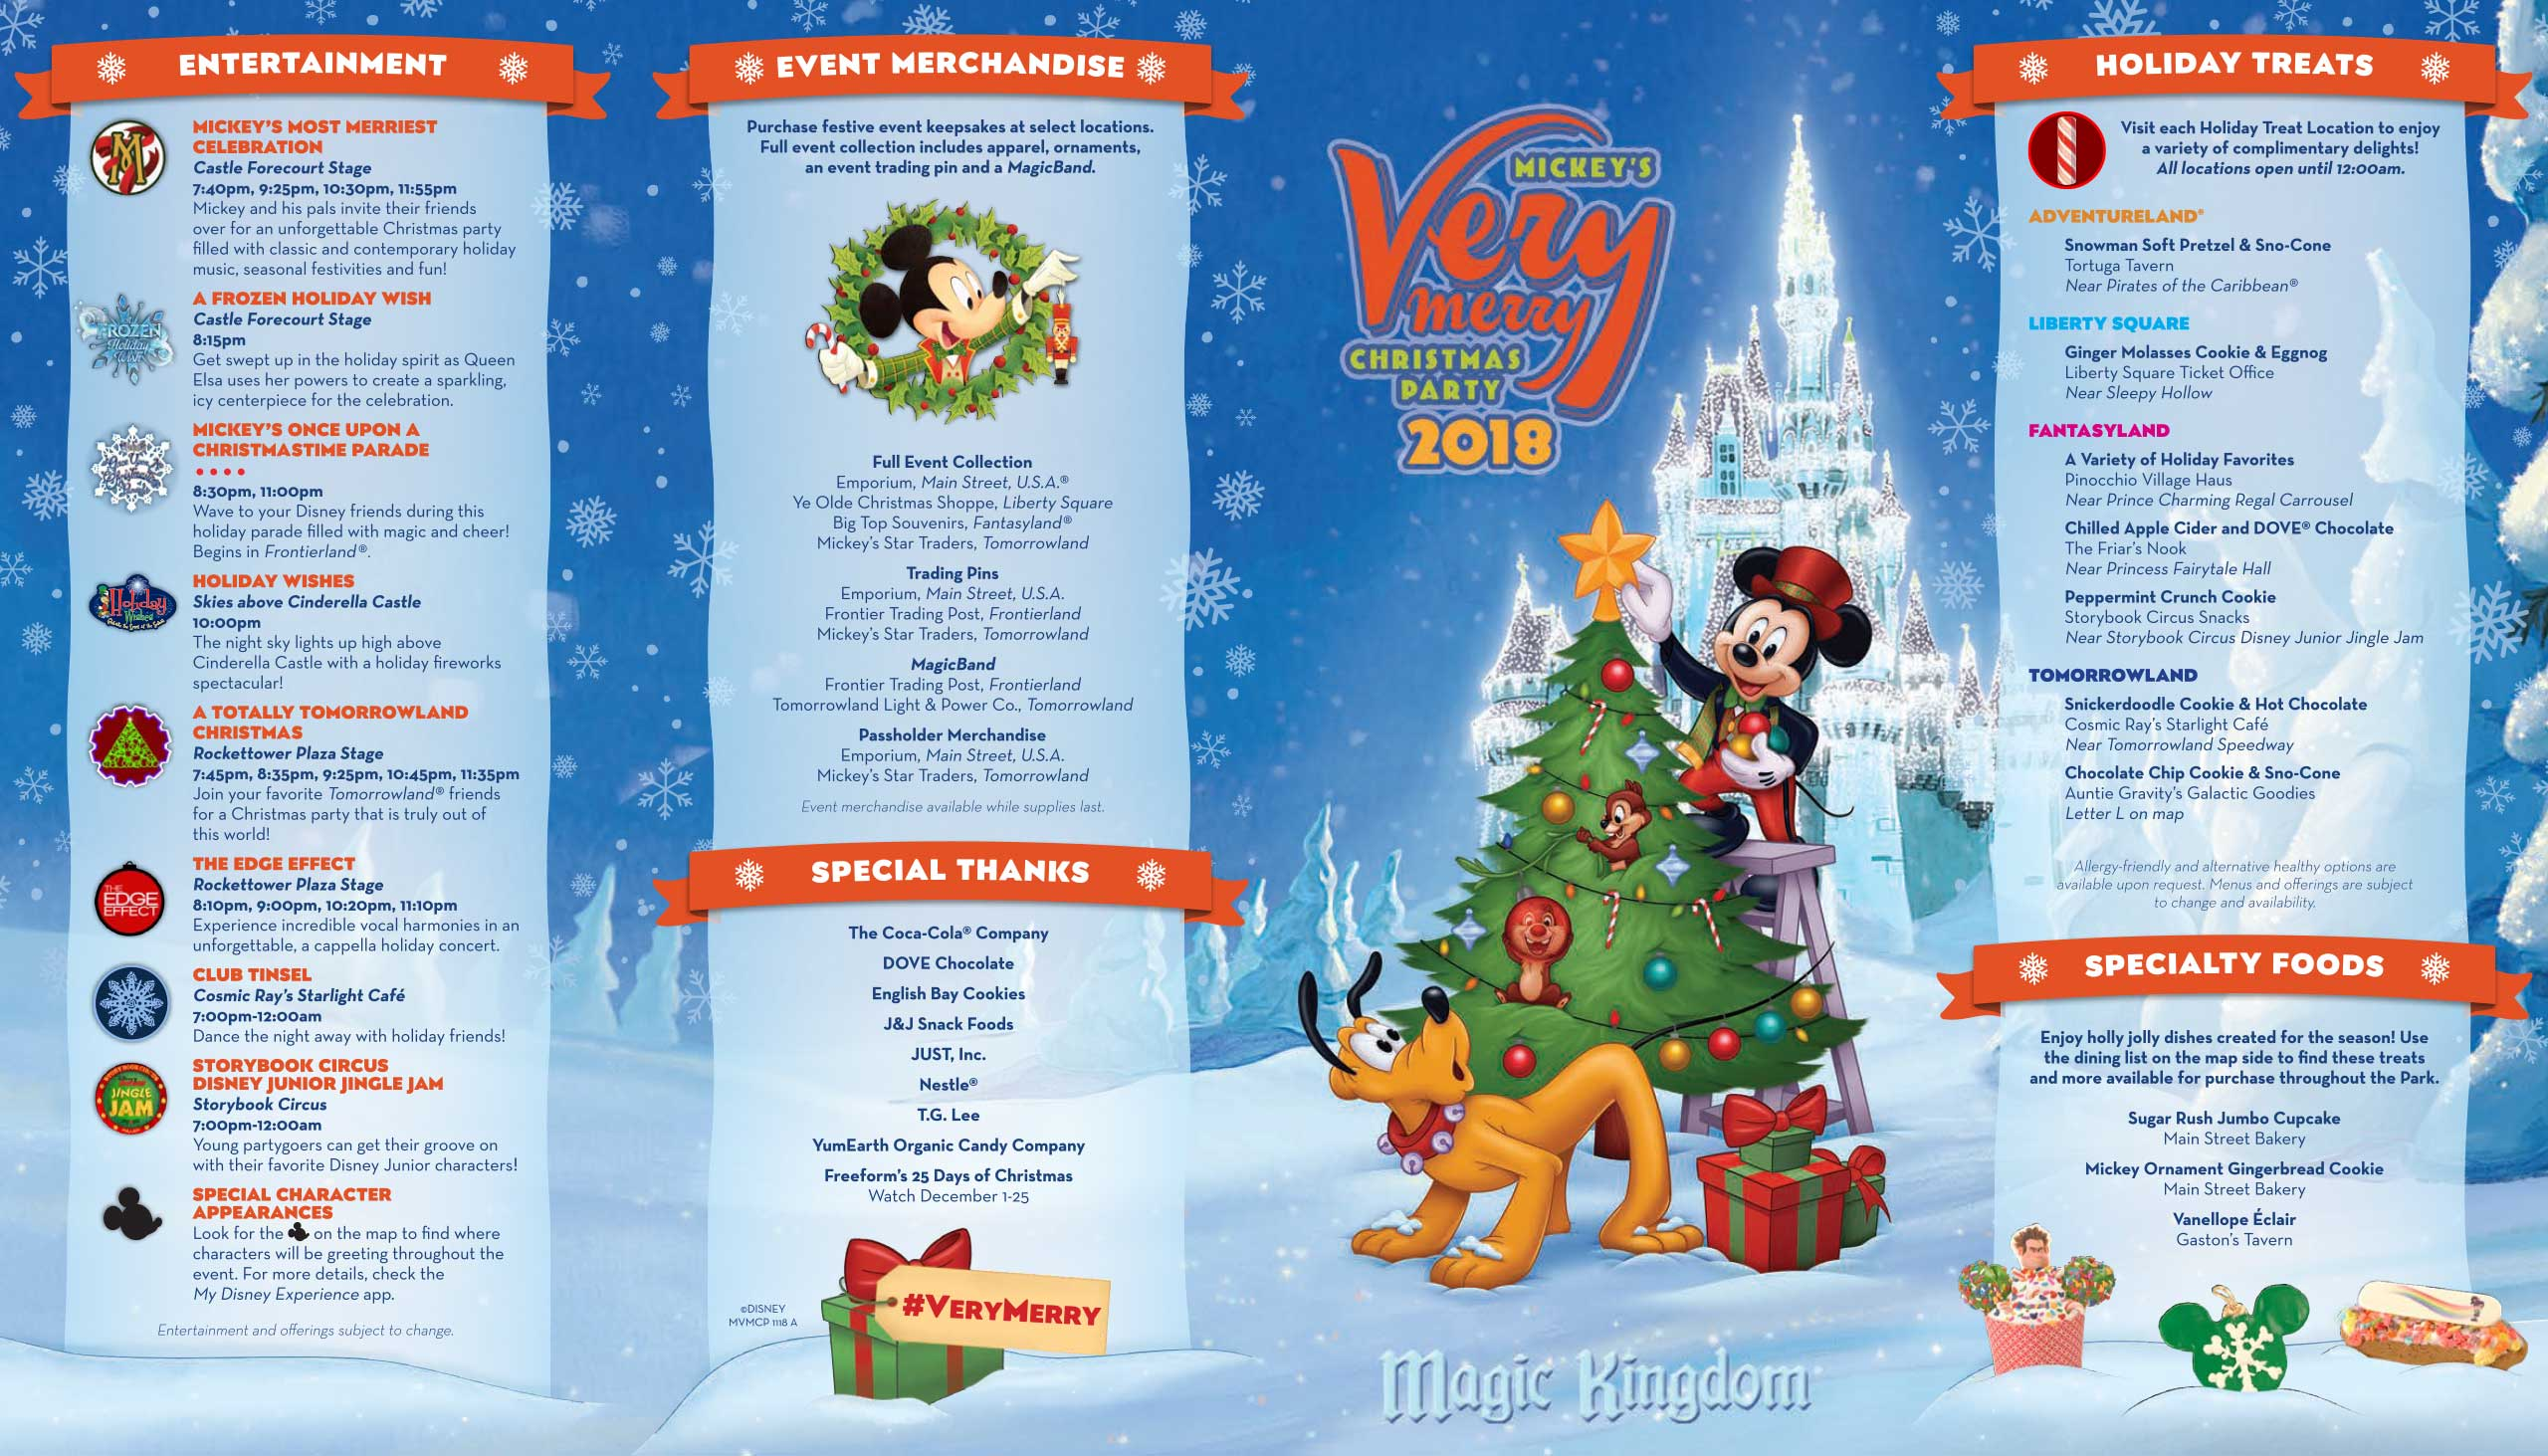 Mickeys Very Merry Christmas Party 2020 Mickey's Very Merry Christmas Party 2018 guide map   Photo 1 of 2